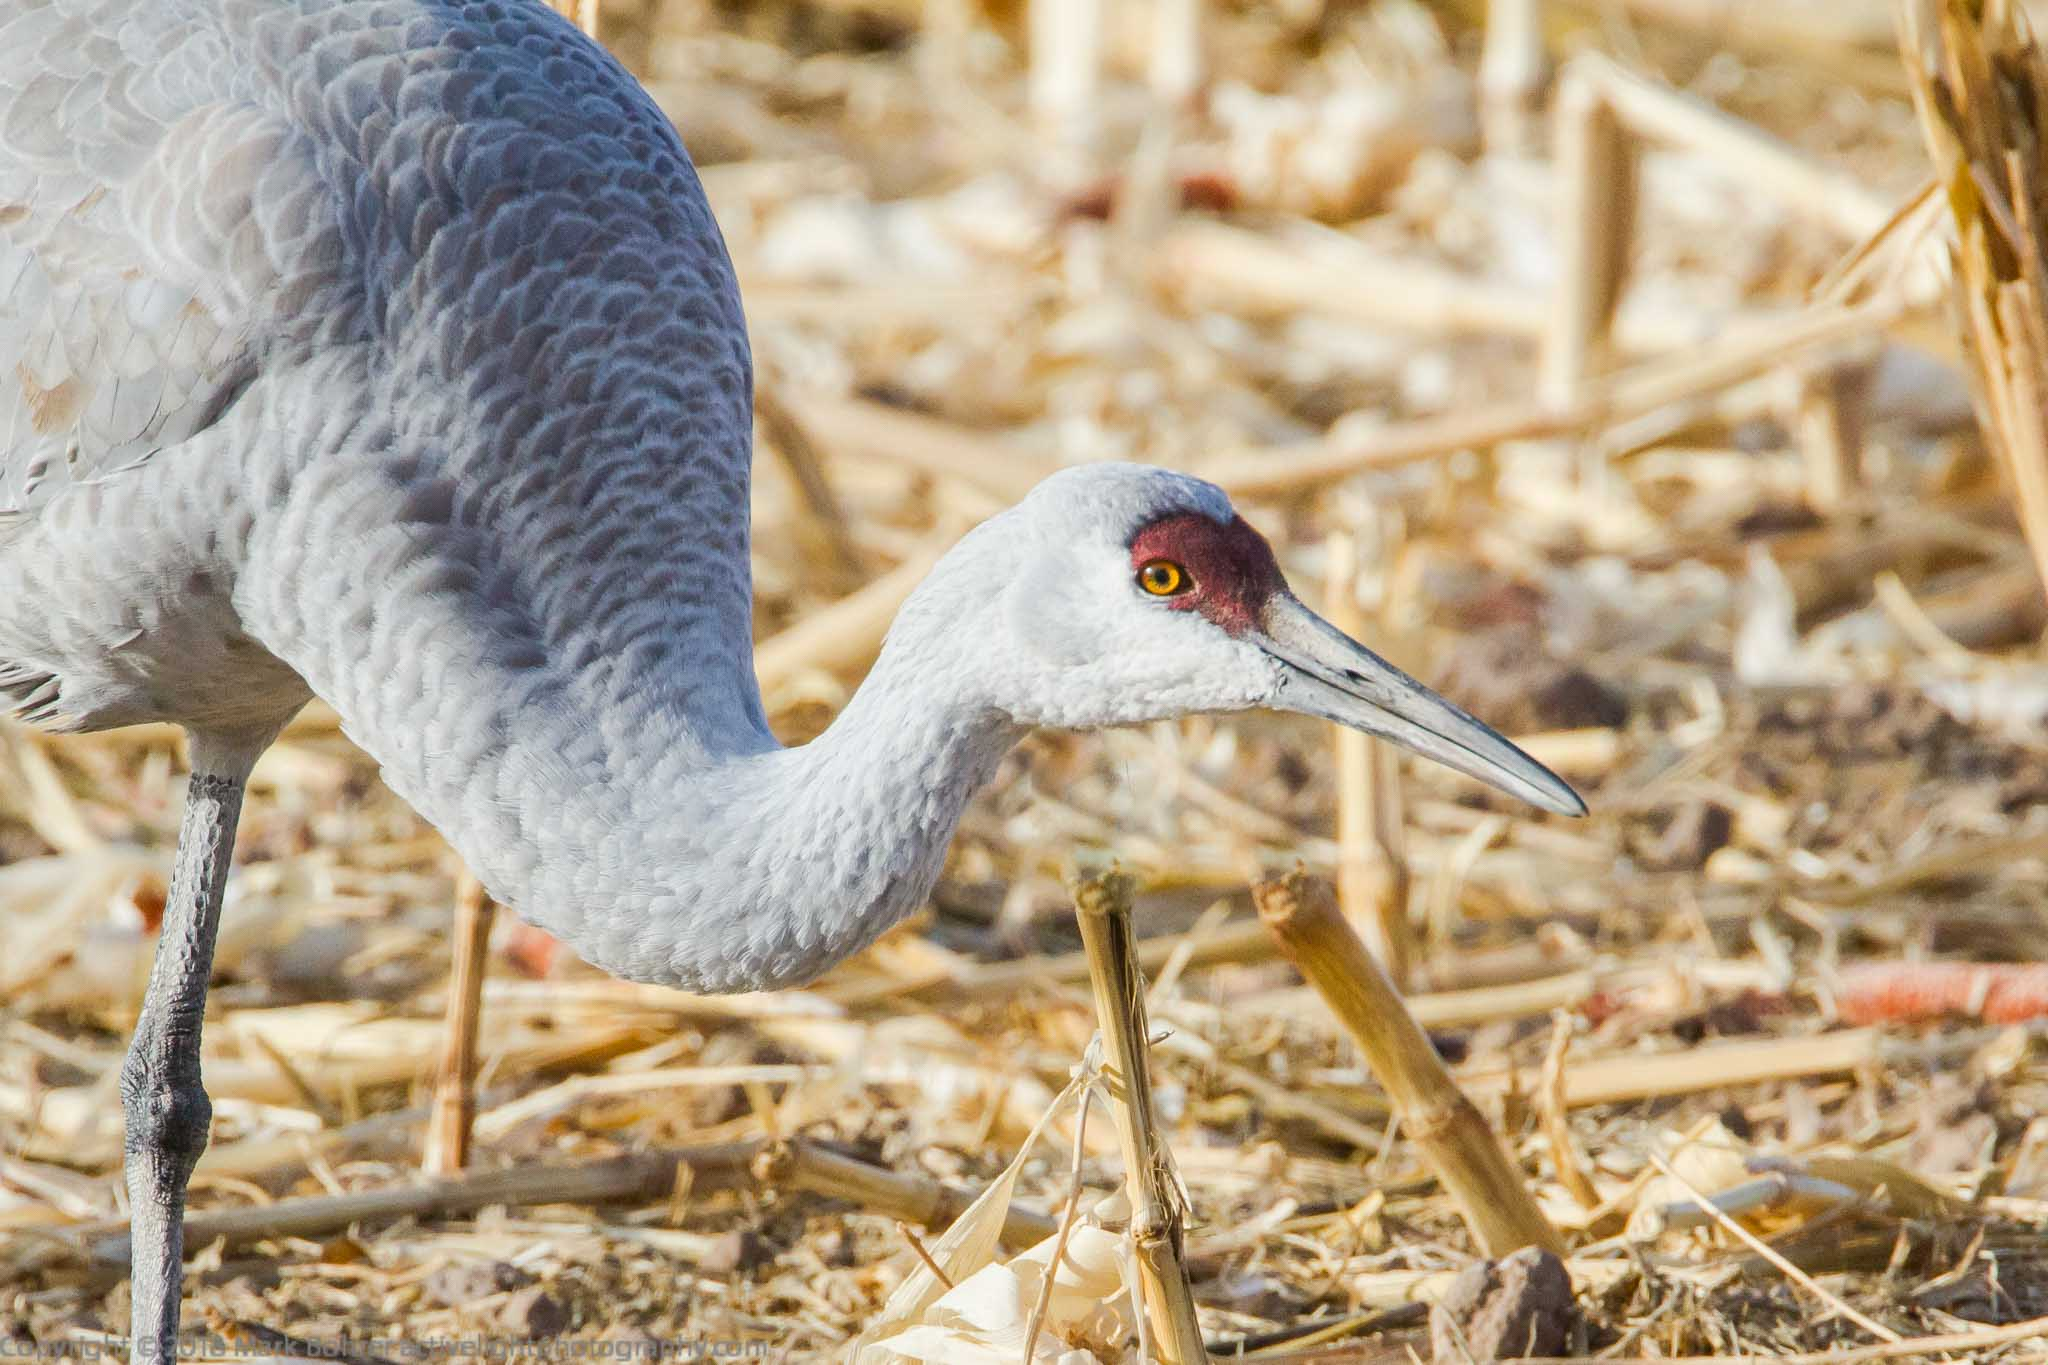 Sandhill crane - Who are YOU?, Bosque del Apache NWR